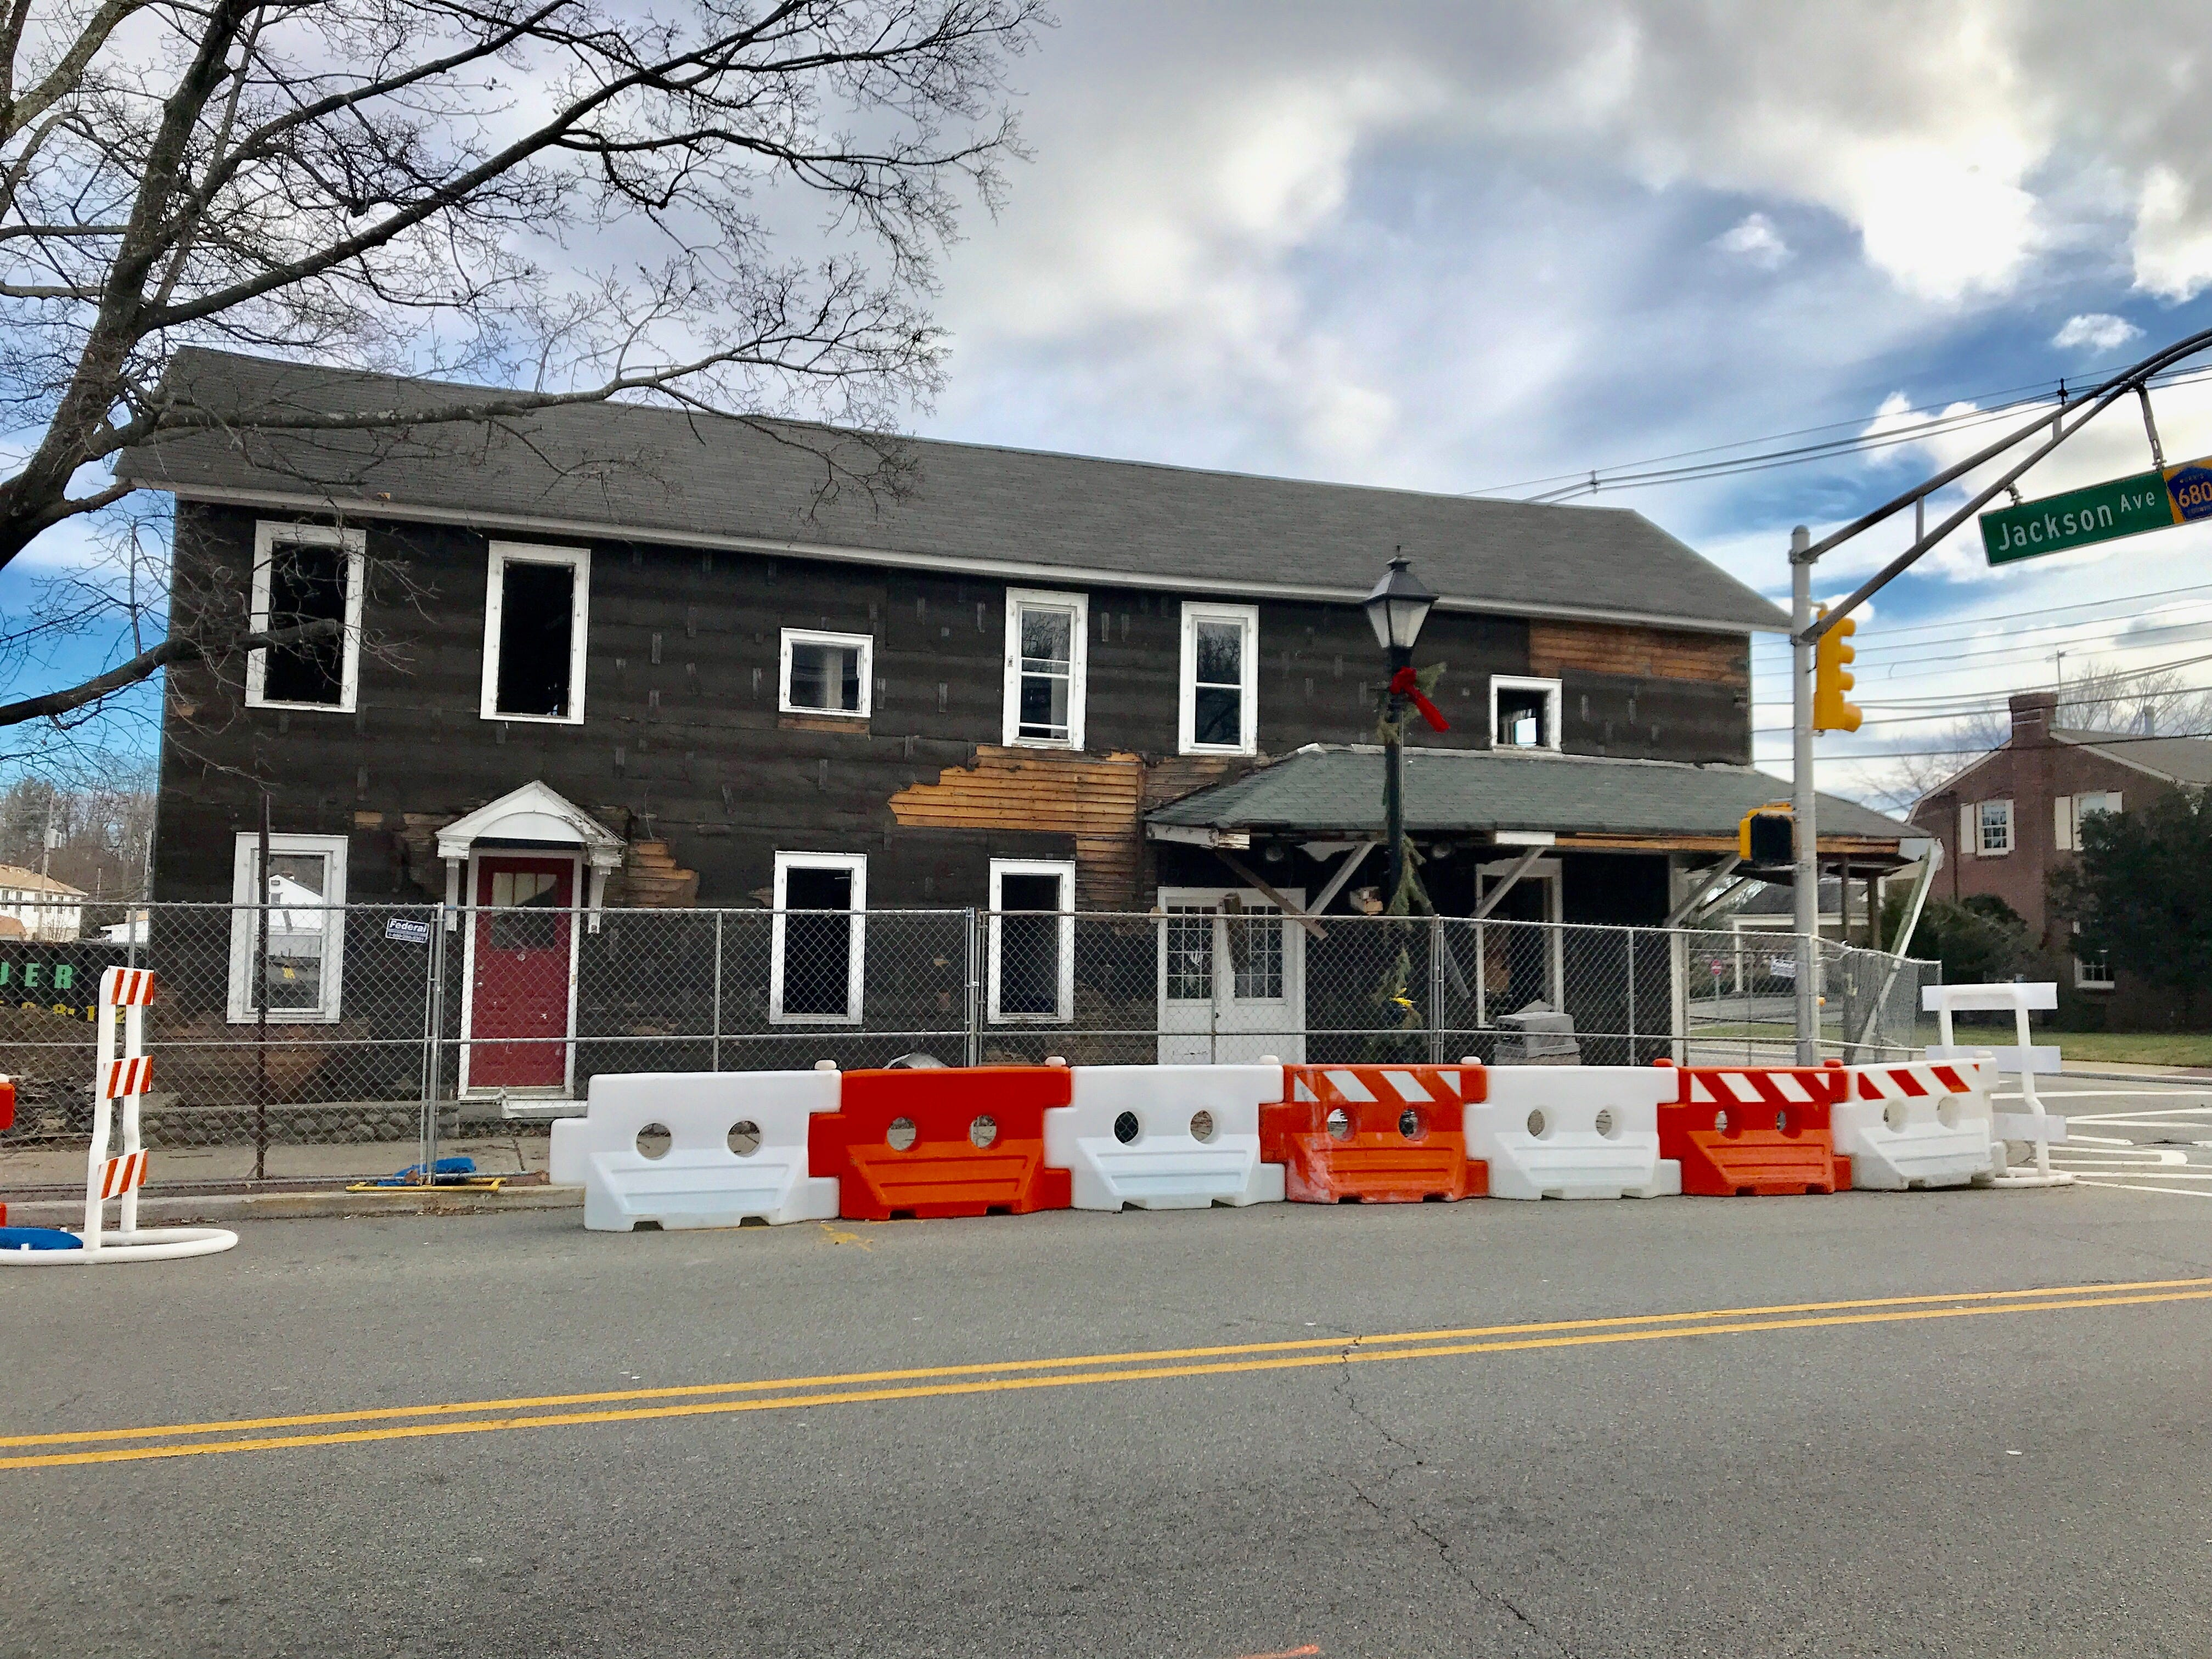 The Jones' Hardware building in Pequannock pictured on Christmas Day, 2018. The building was the last to be demolished days later to make way for a new Chase bank.